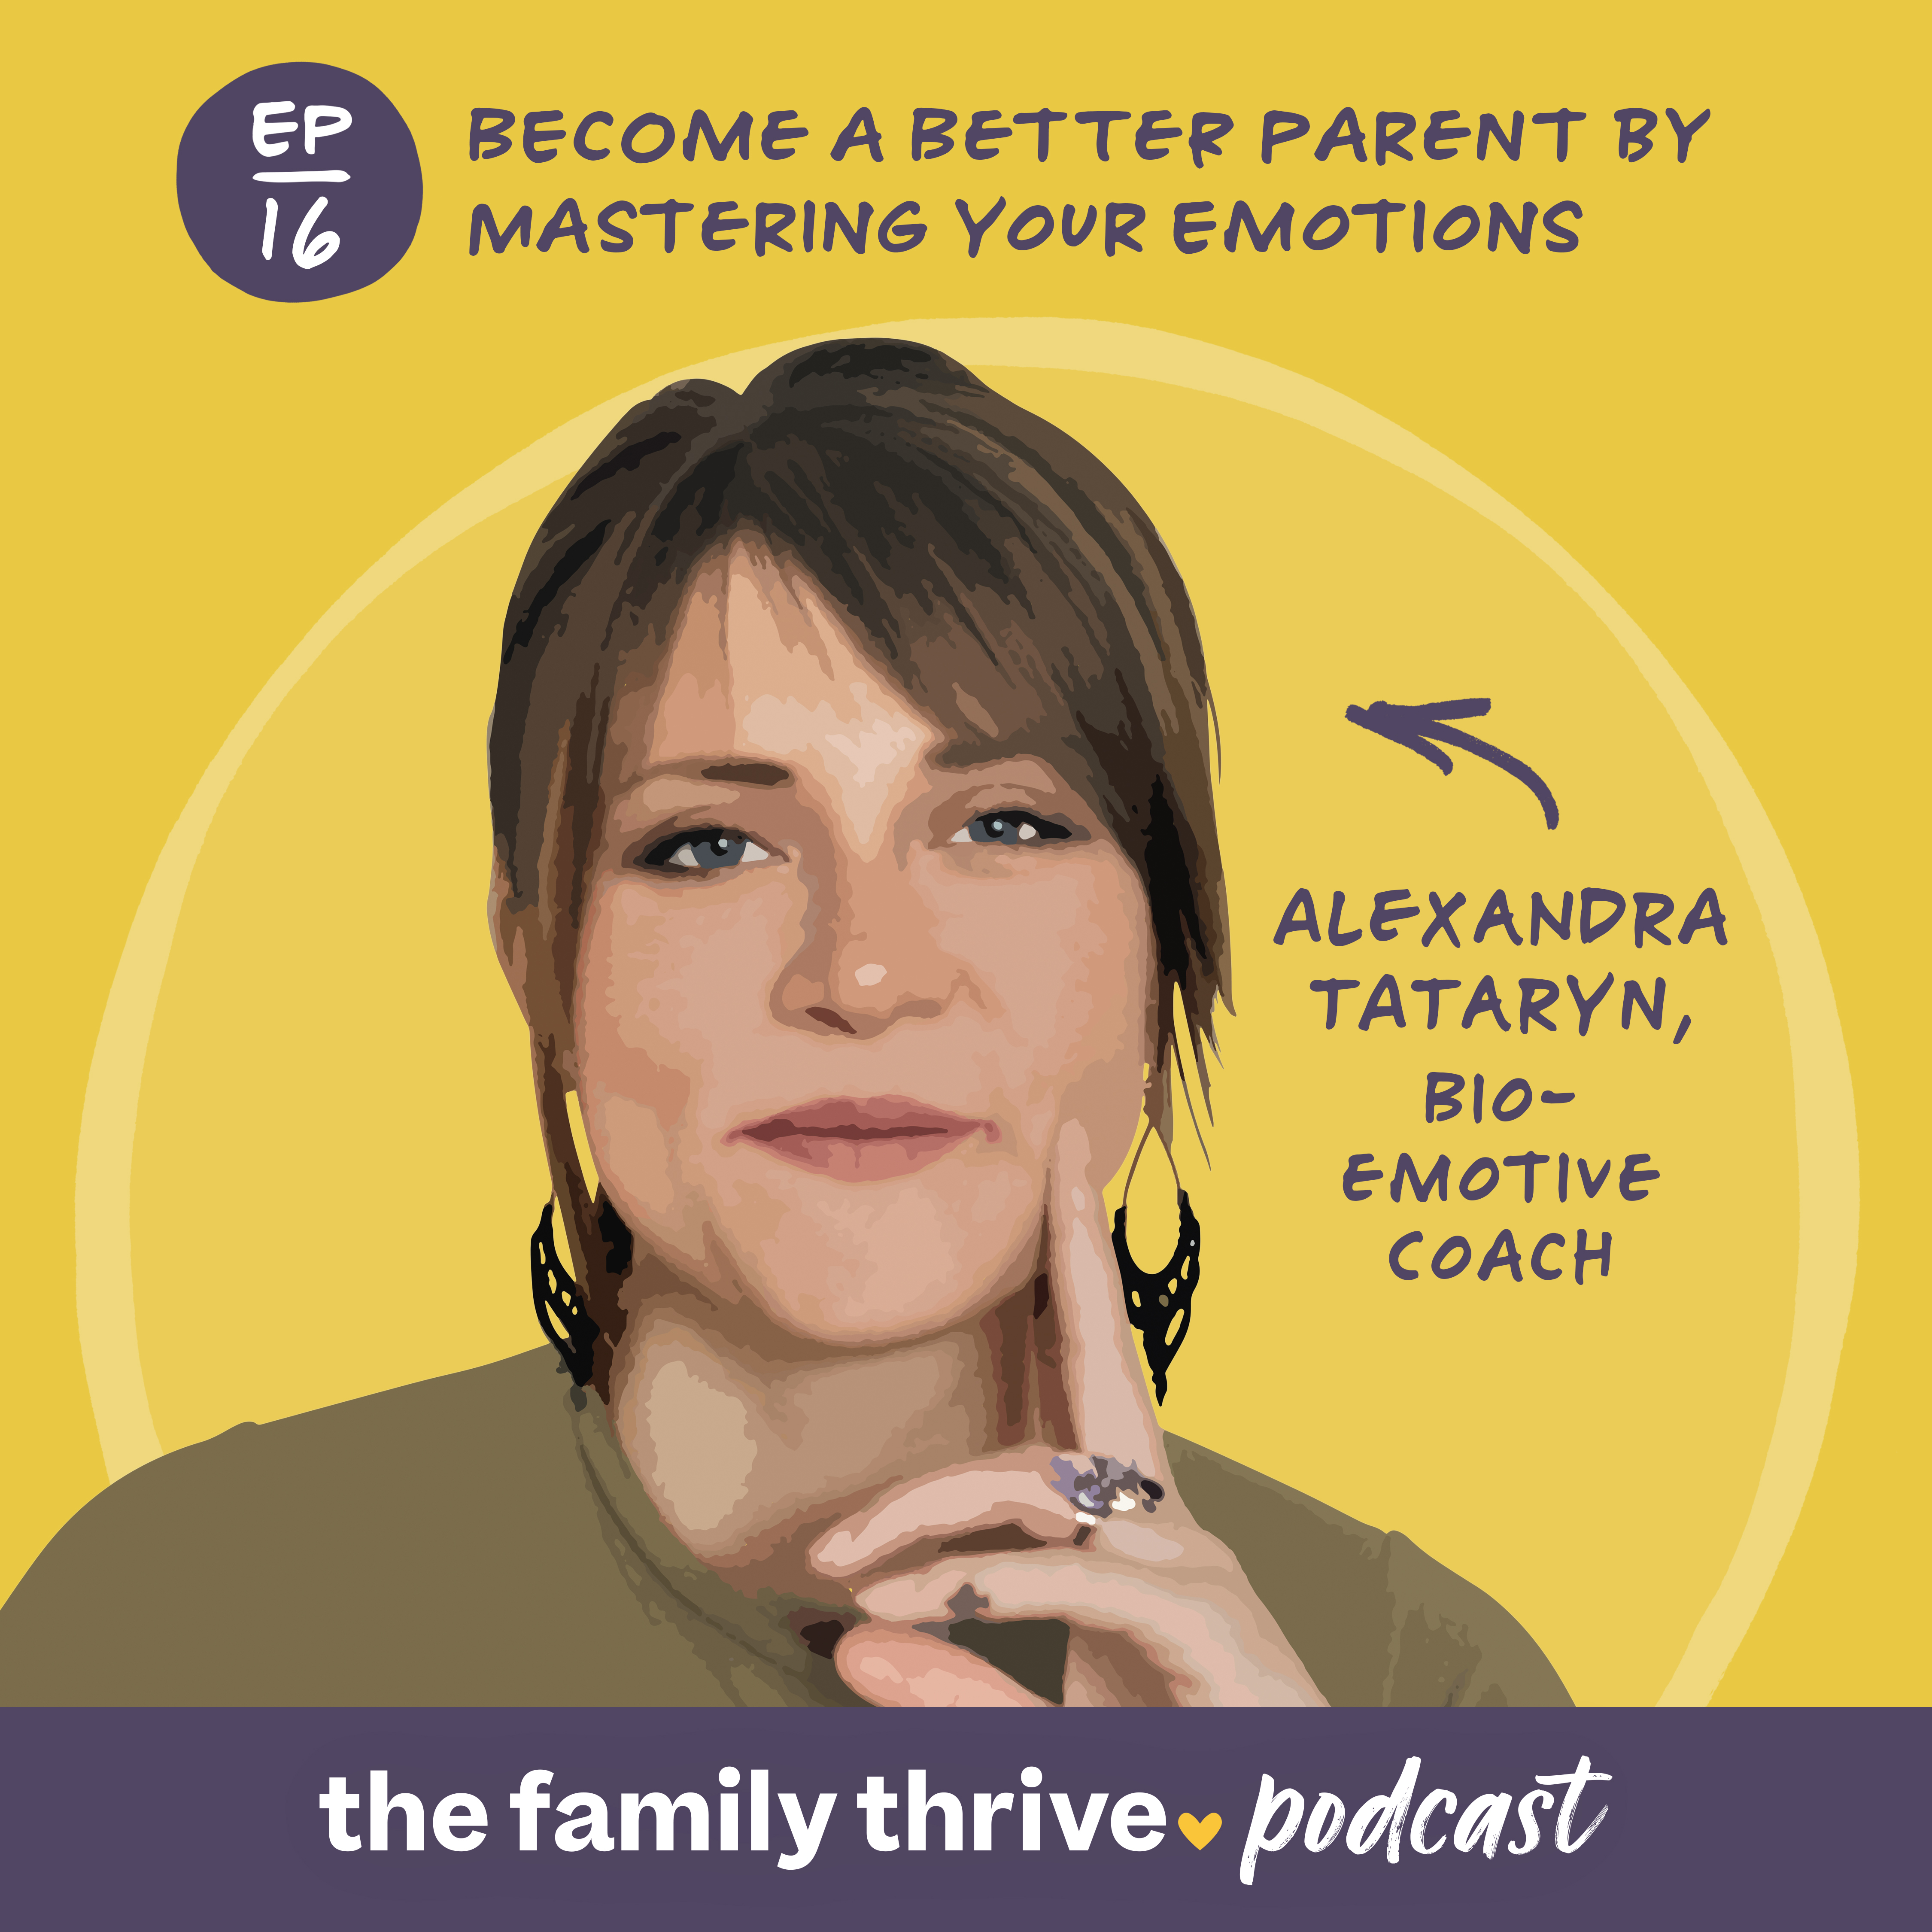 Podcast Ep. 16: Become a Better Parent by Mastering Your Emotions with Alexandra Tataryn, Bio-Emotive Coach